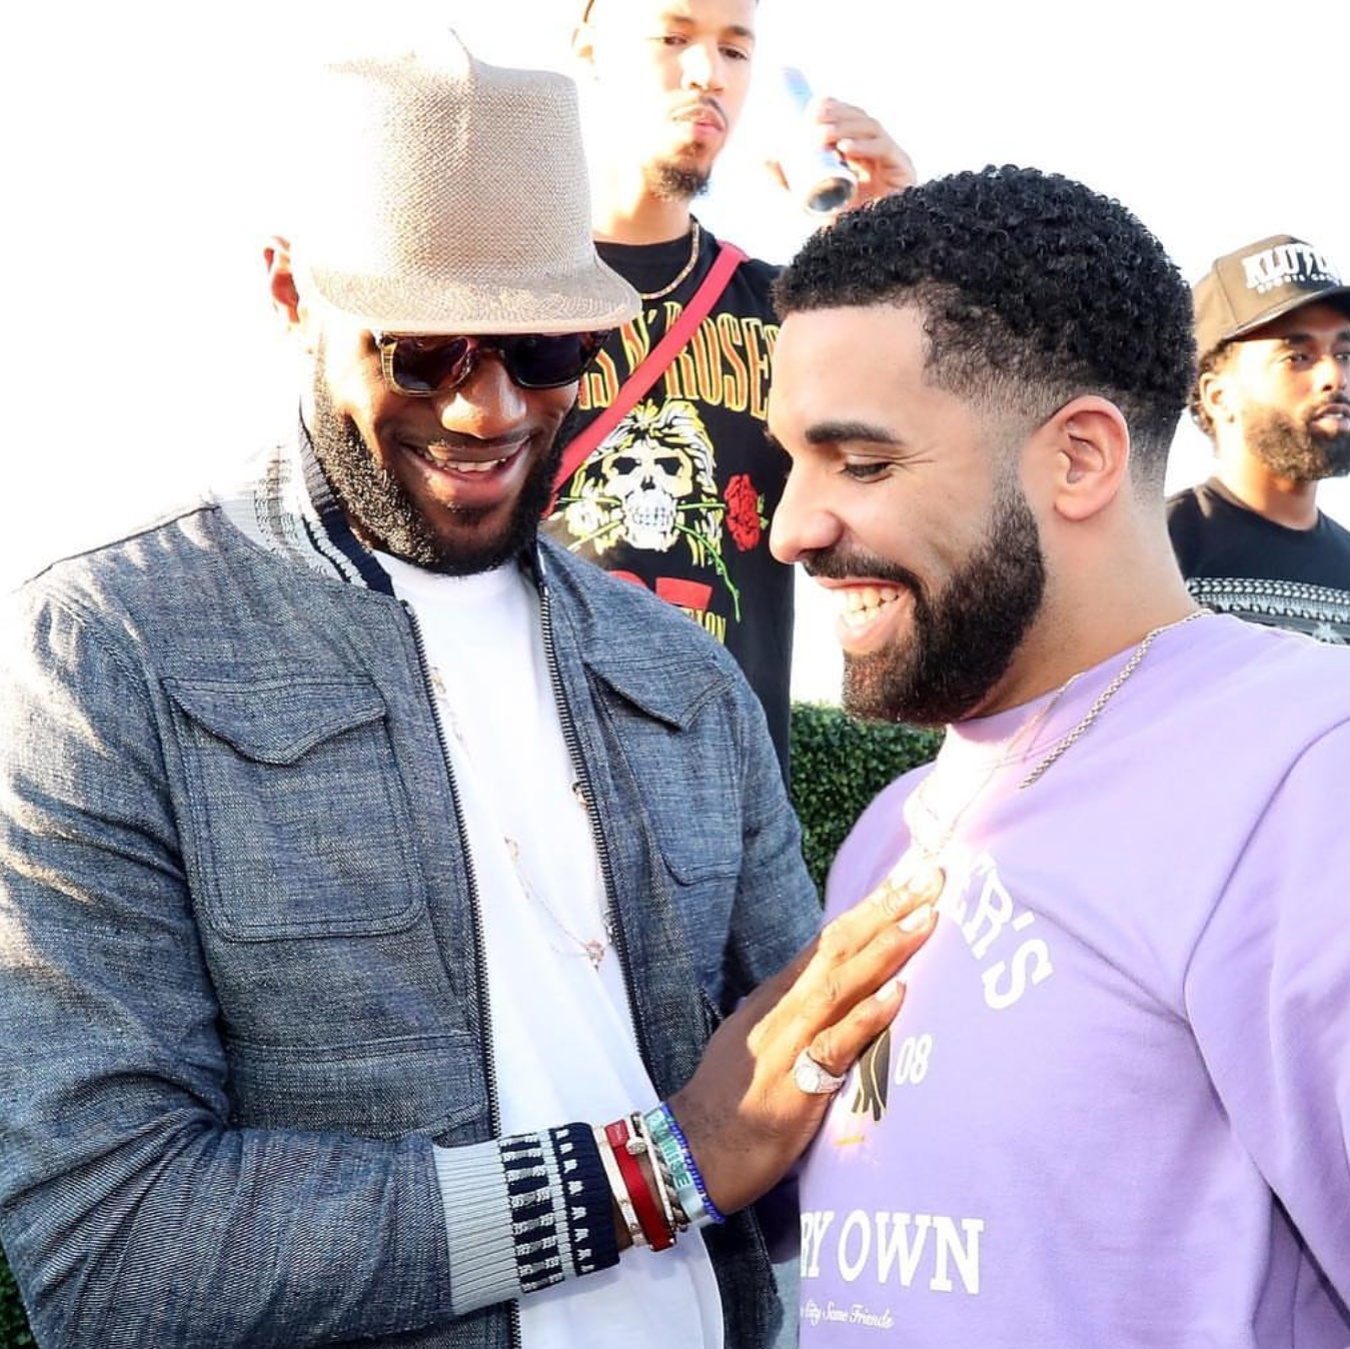 Lebron James w/Drake Caribana Weekend  Bottega Veneta Contrast-trim Chambray Jacket, Raw Cuff Cropped Cotton Jogging Pants, &  Gladys Tamez Millinery Hat